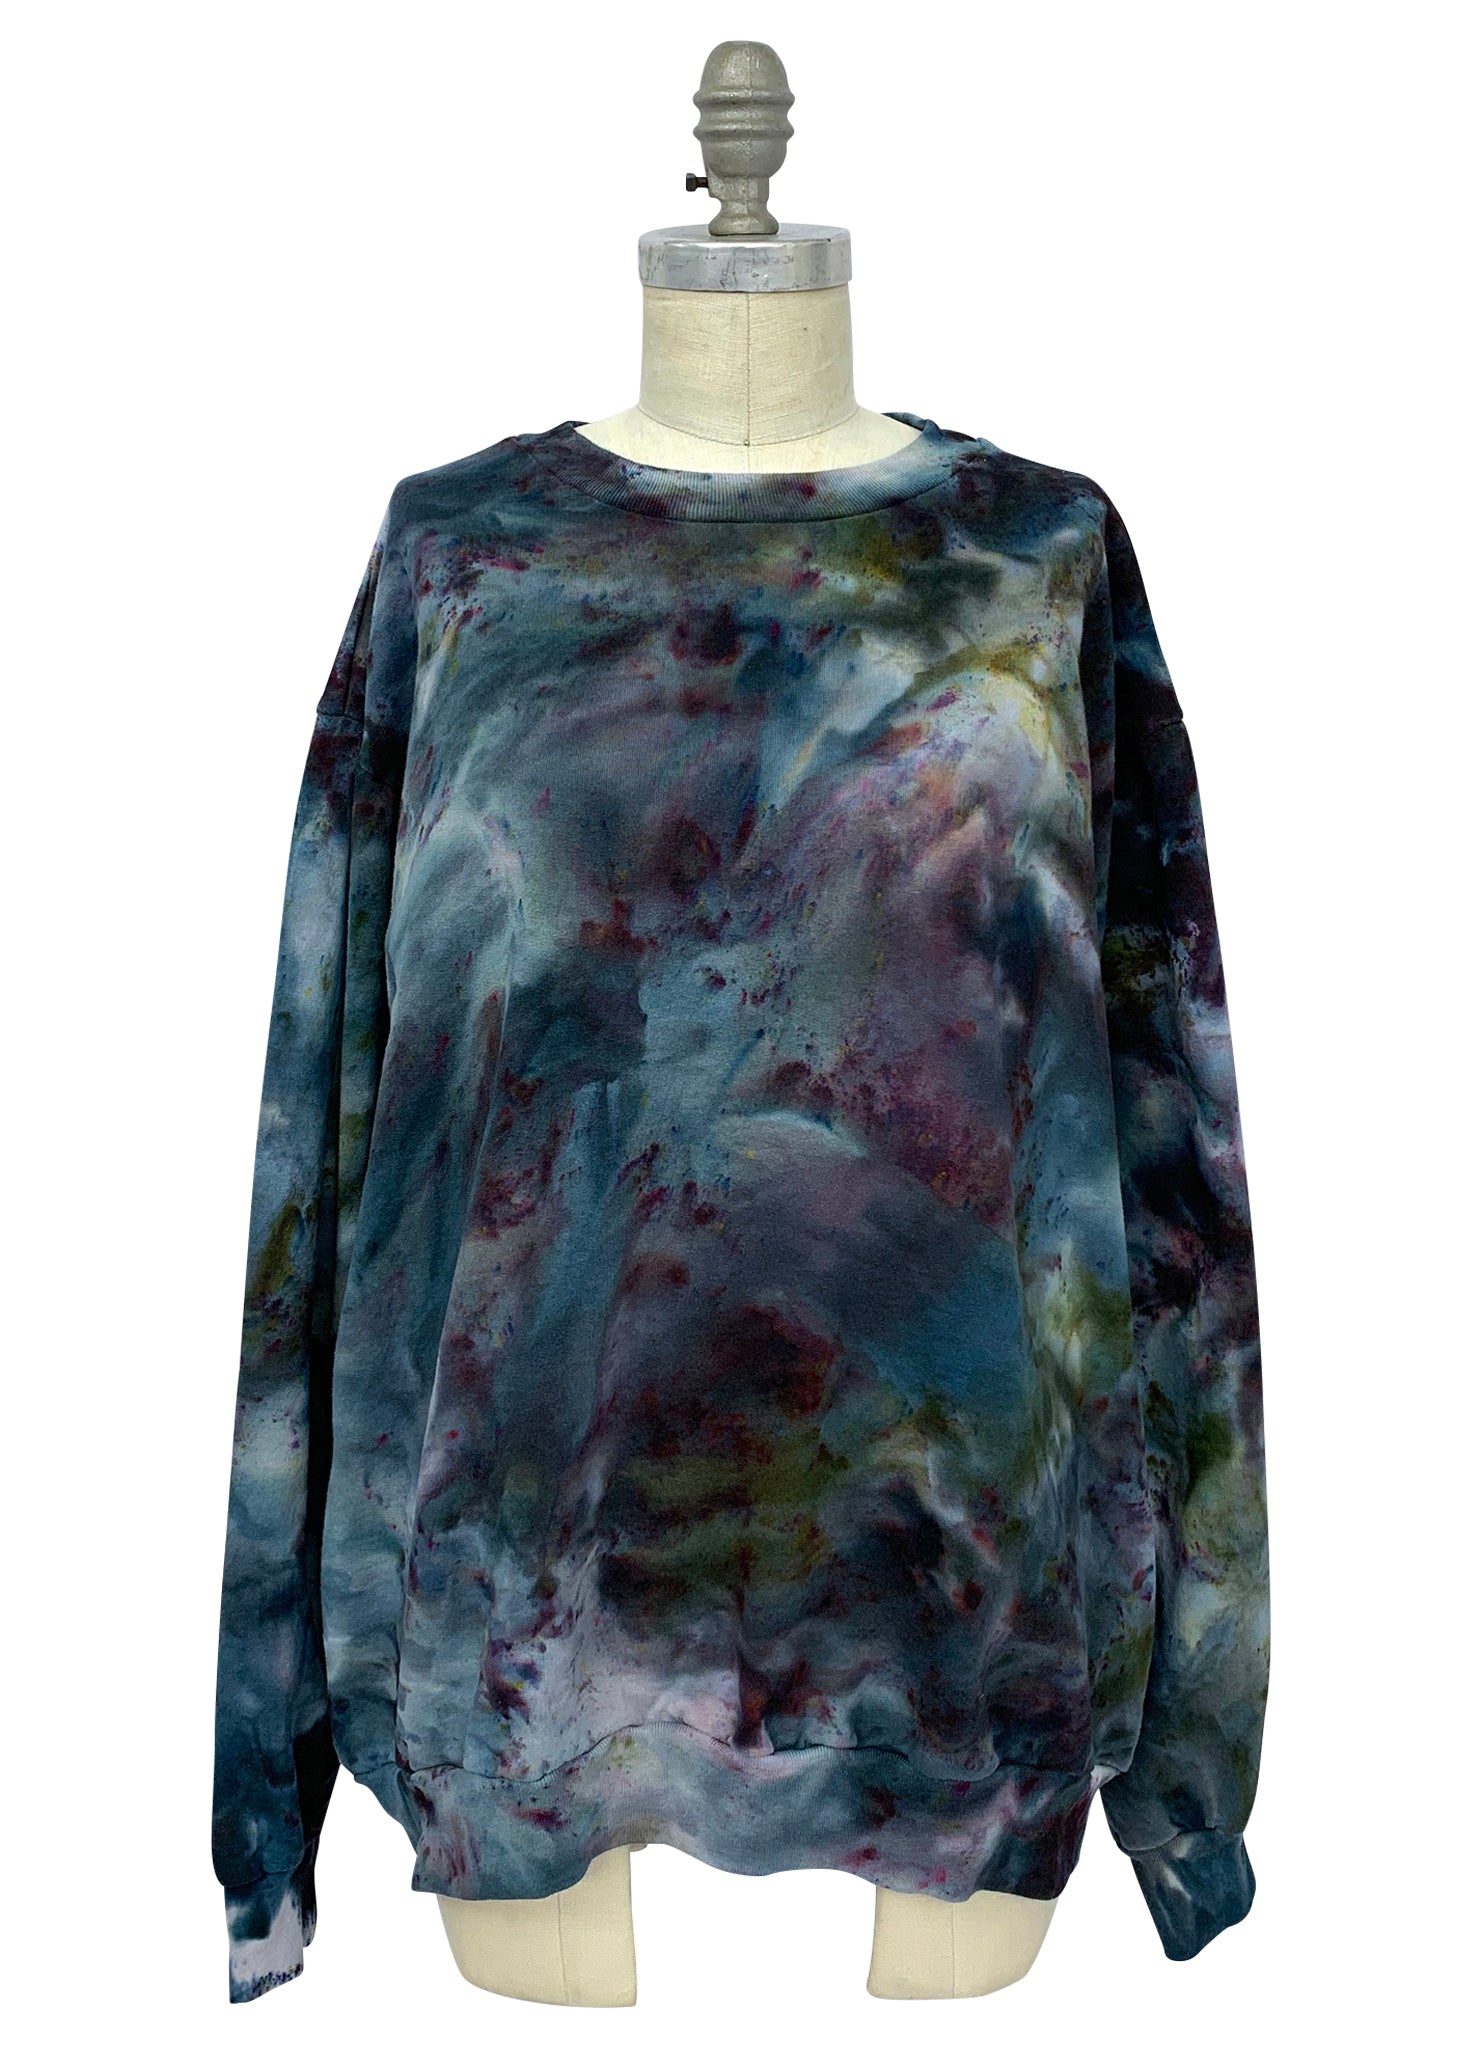 Hand Dyed Perfect Sweatshirt in A Night Out - Limited Release